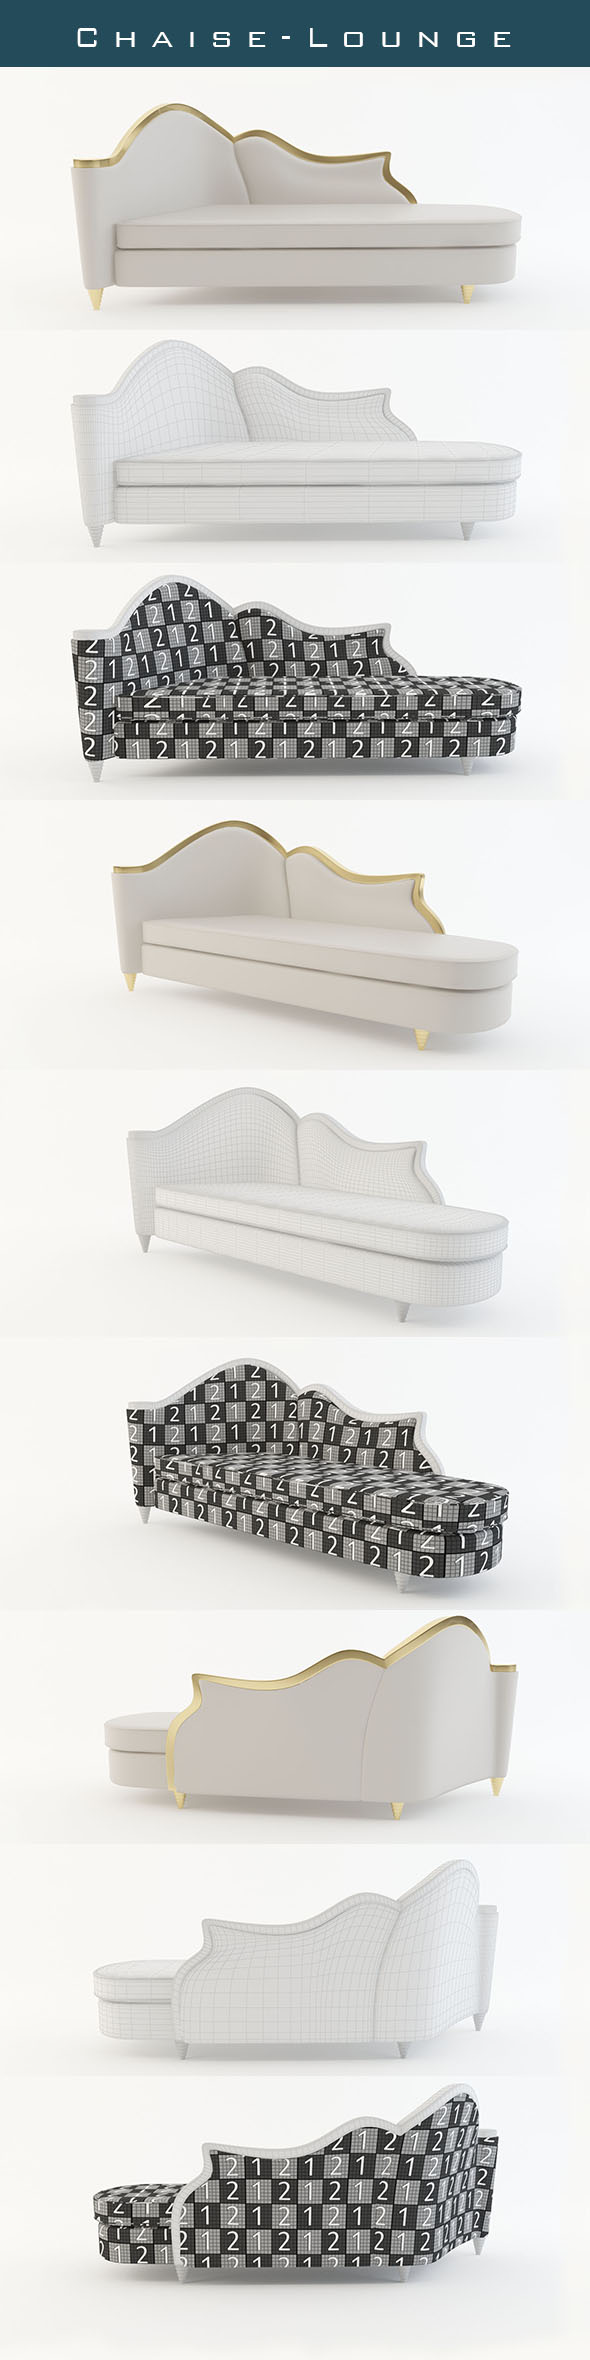 Chaise Lounge - 3DOcean Item for Sale